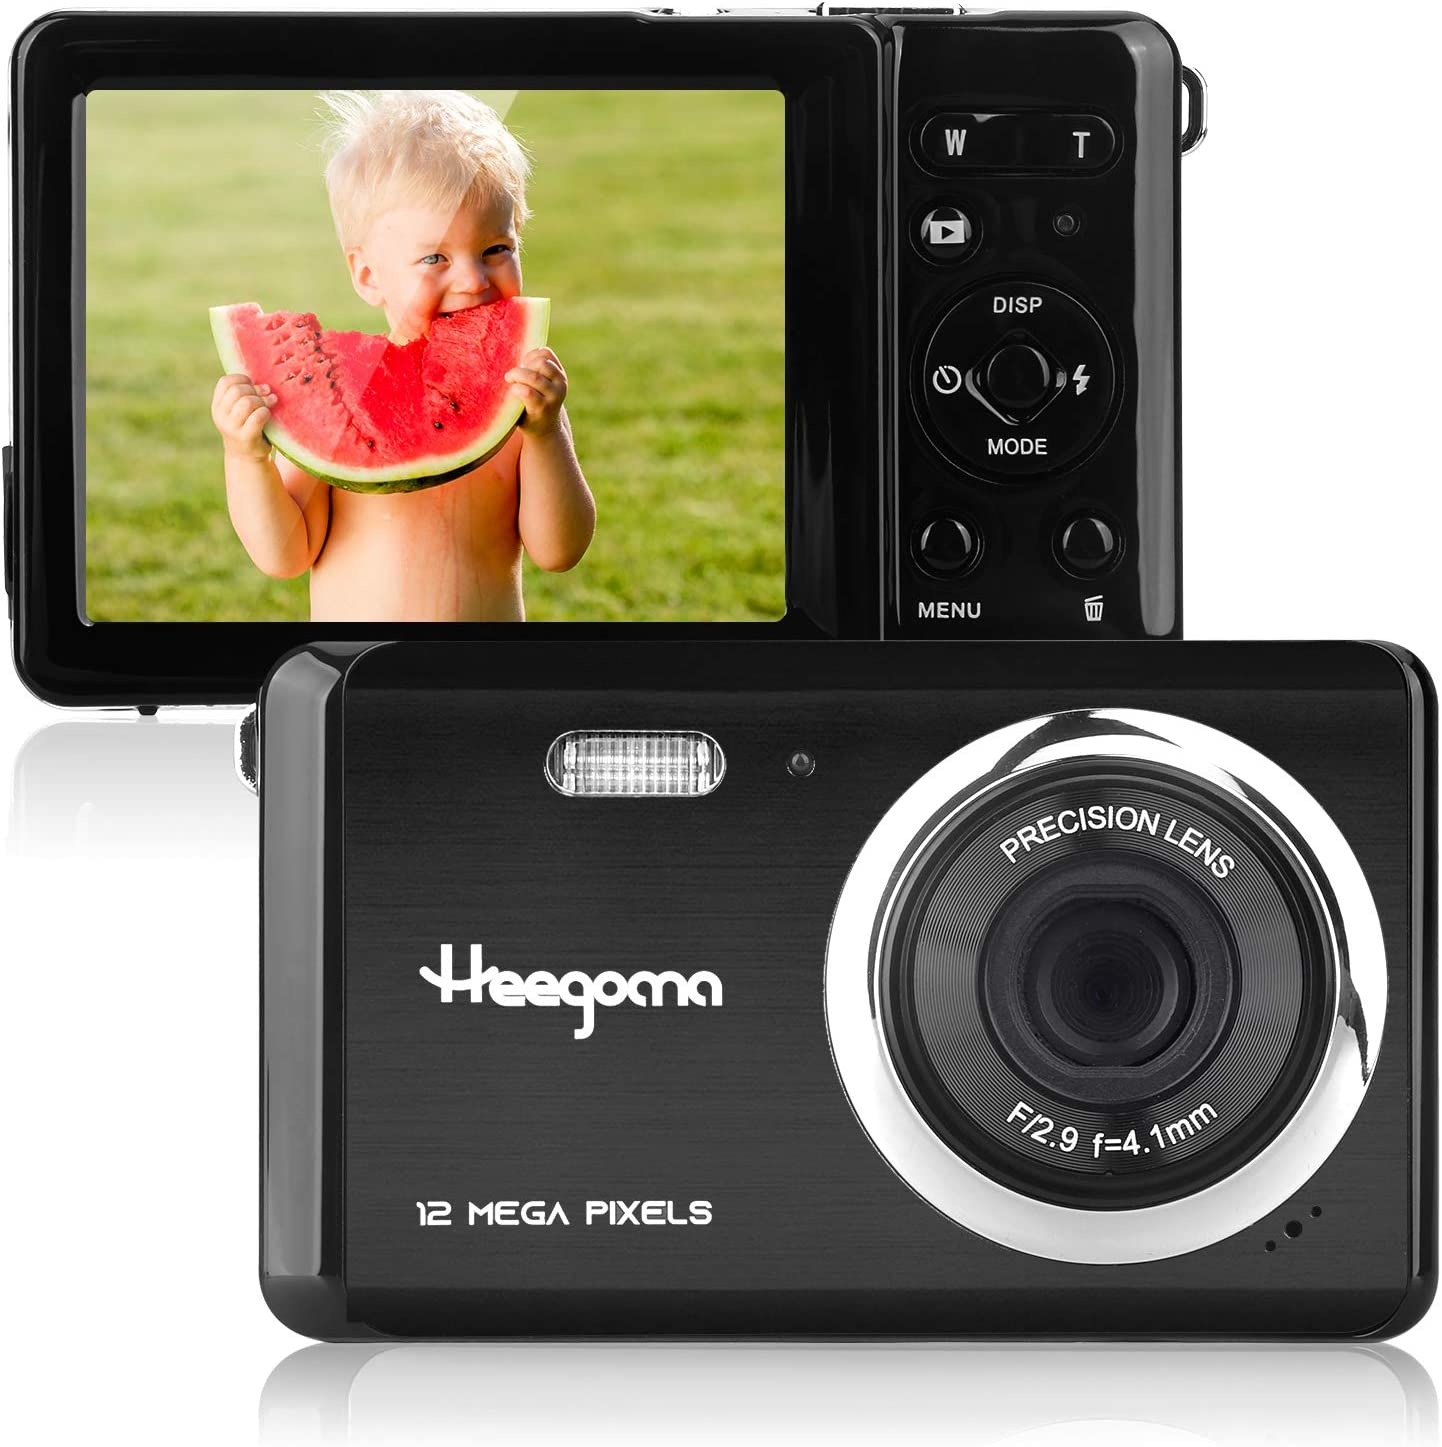 Kids Digital Camera, Heegomn 2.8 inch LCD 12MP Compact Digital Camera for Boys and Girls Gift, Portable Point and Shoot Digital Camera with 8X Digital Zoom and Rechargeable Battery